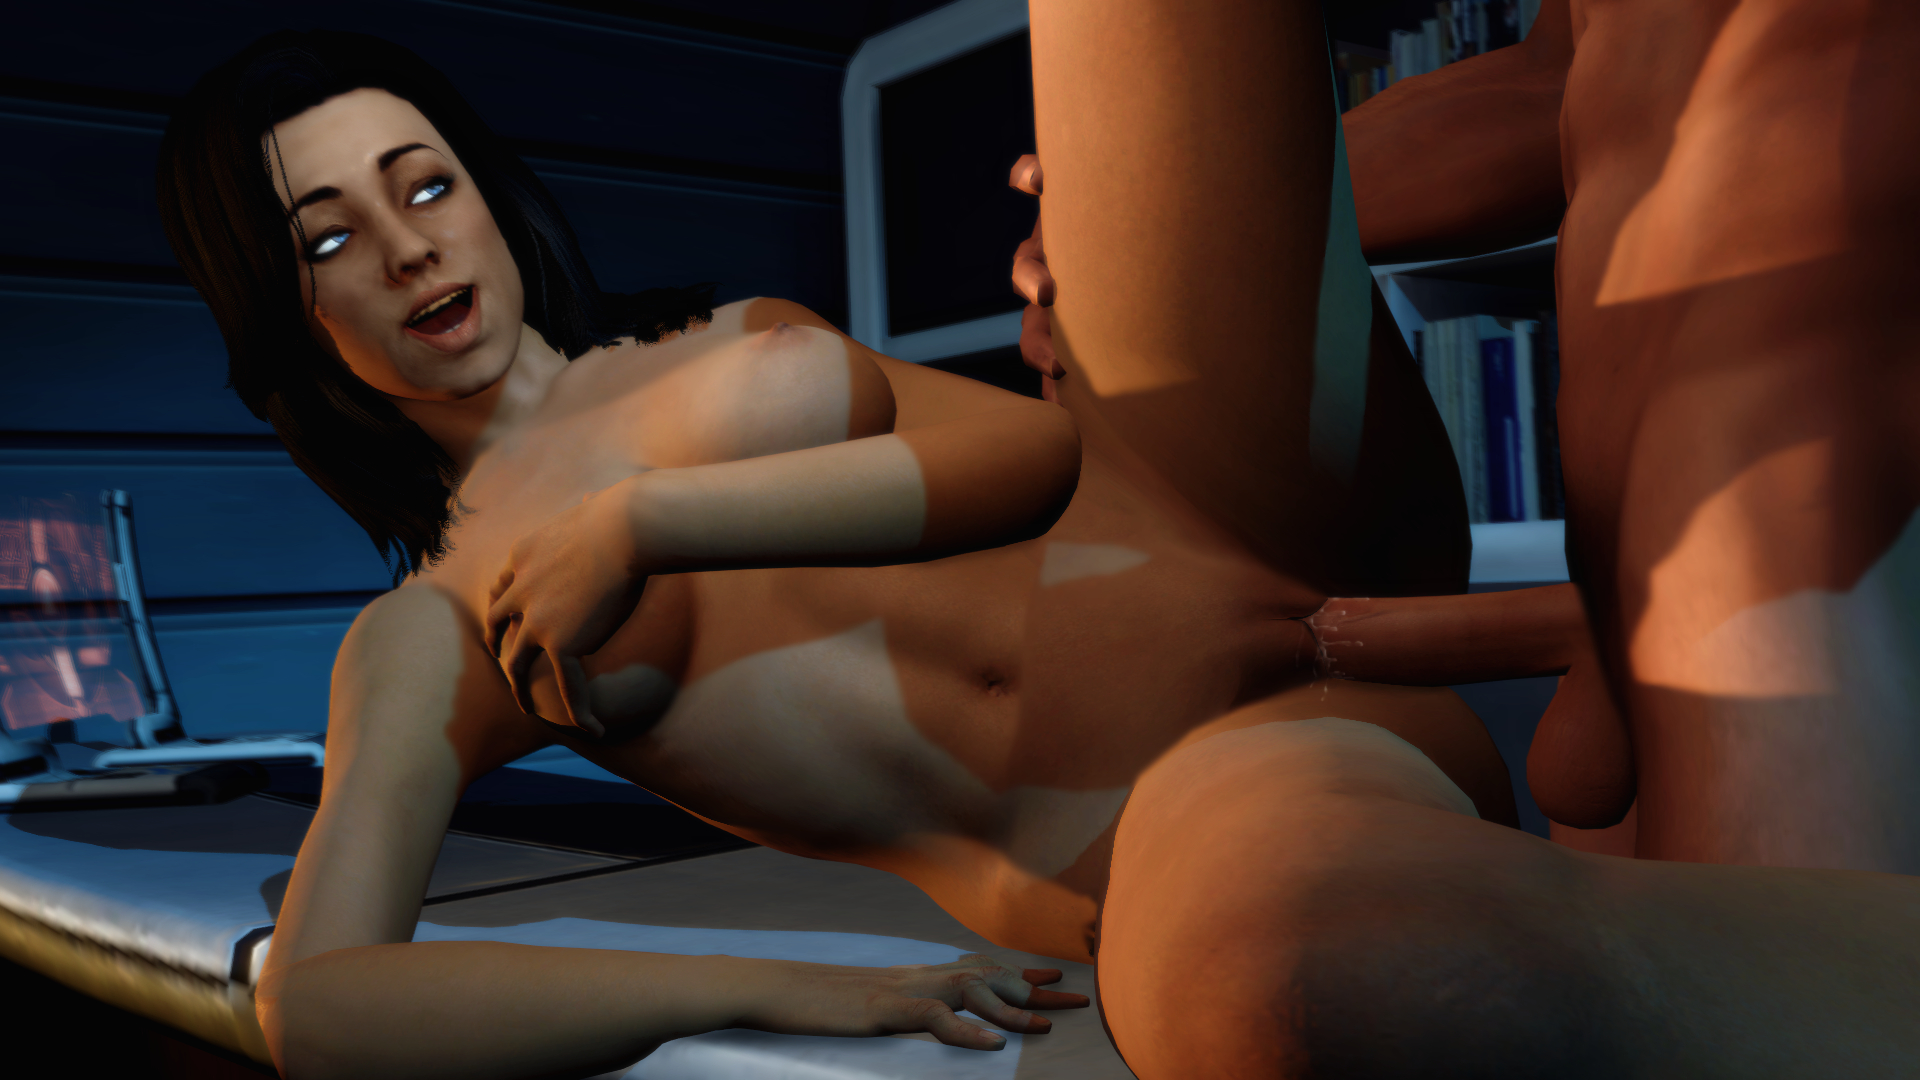 Mass effect miranda porn video nsfw gorgeous stripers